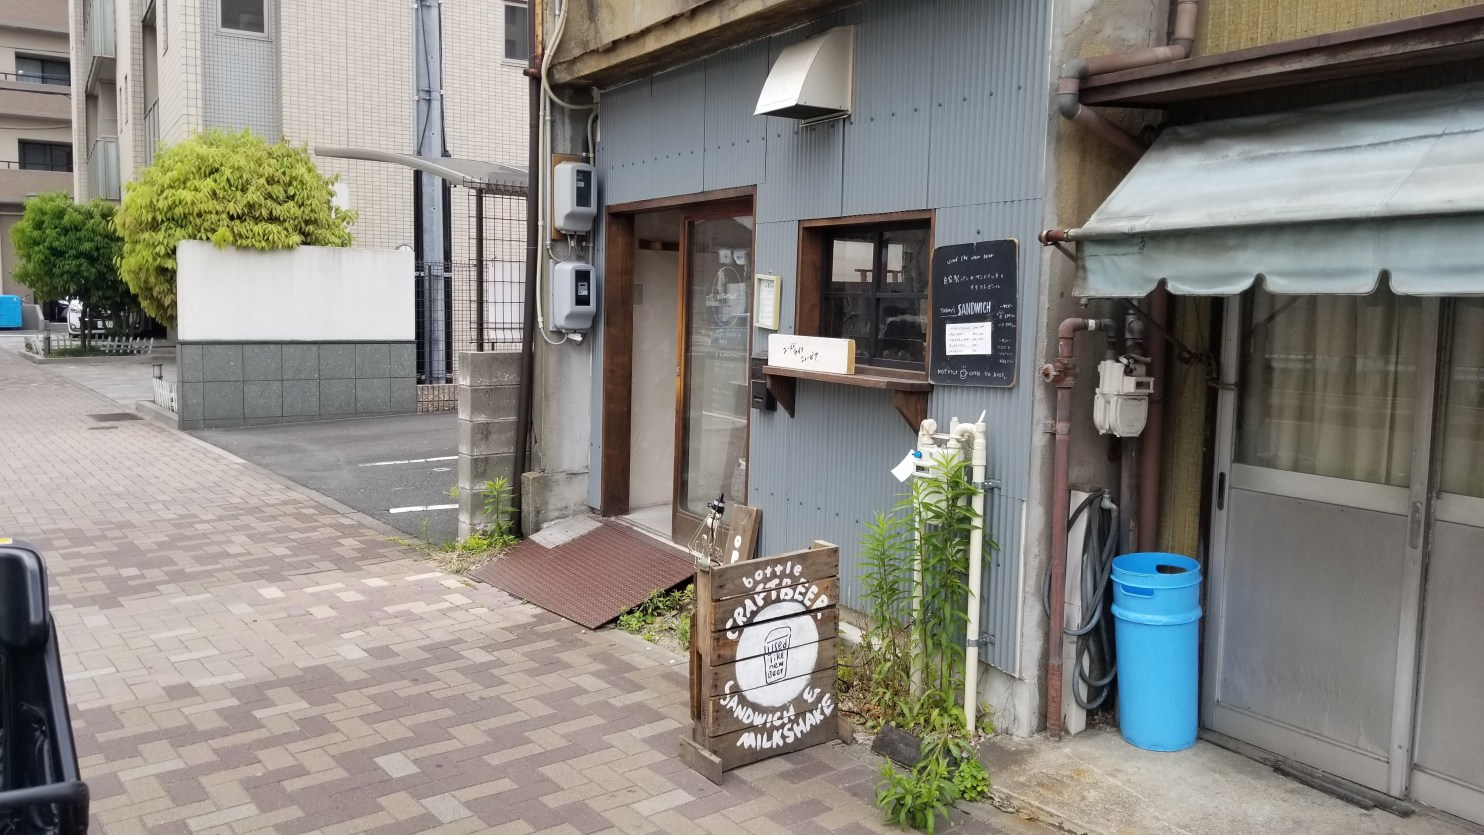 Used Like New Beer Front・ユーズドライクニュービフロント